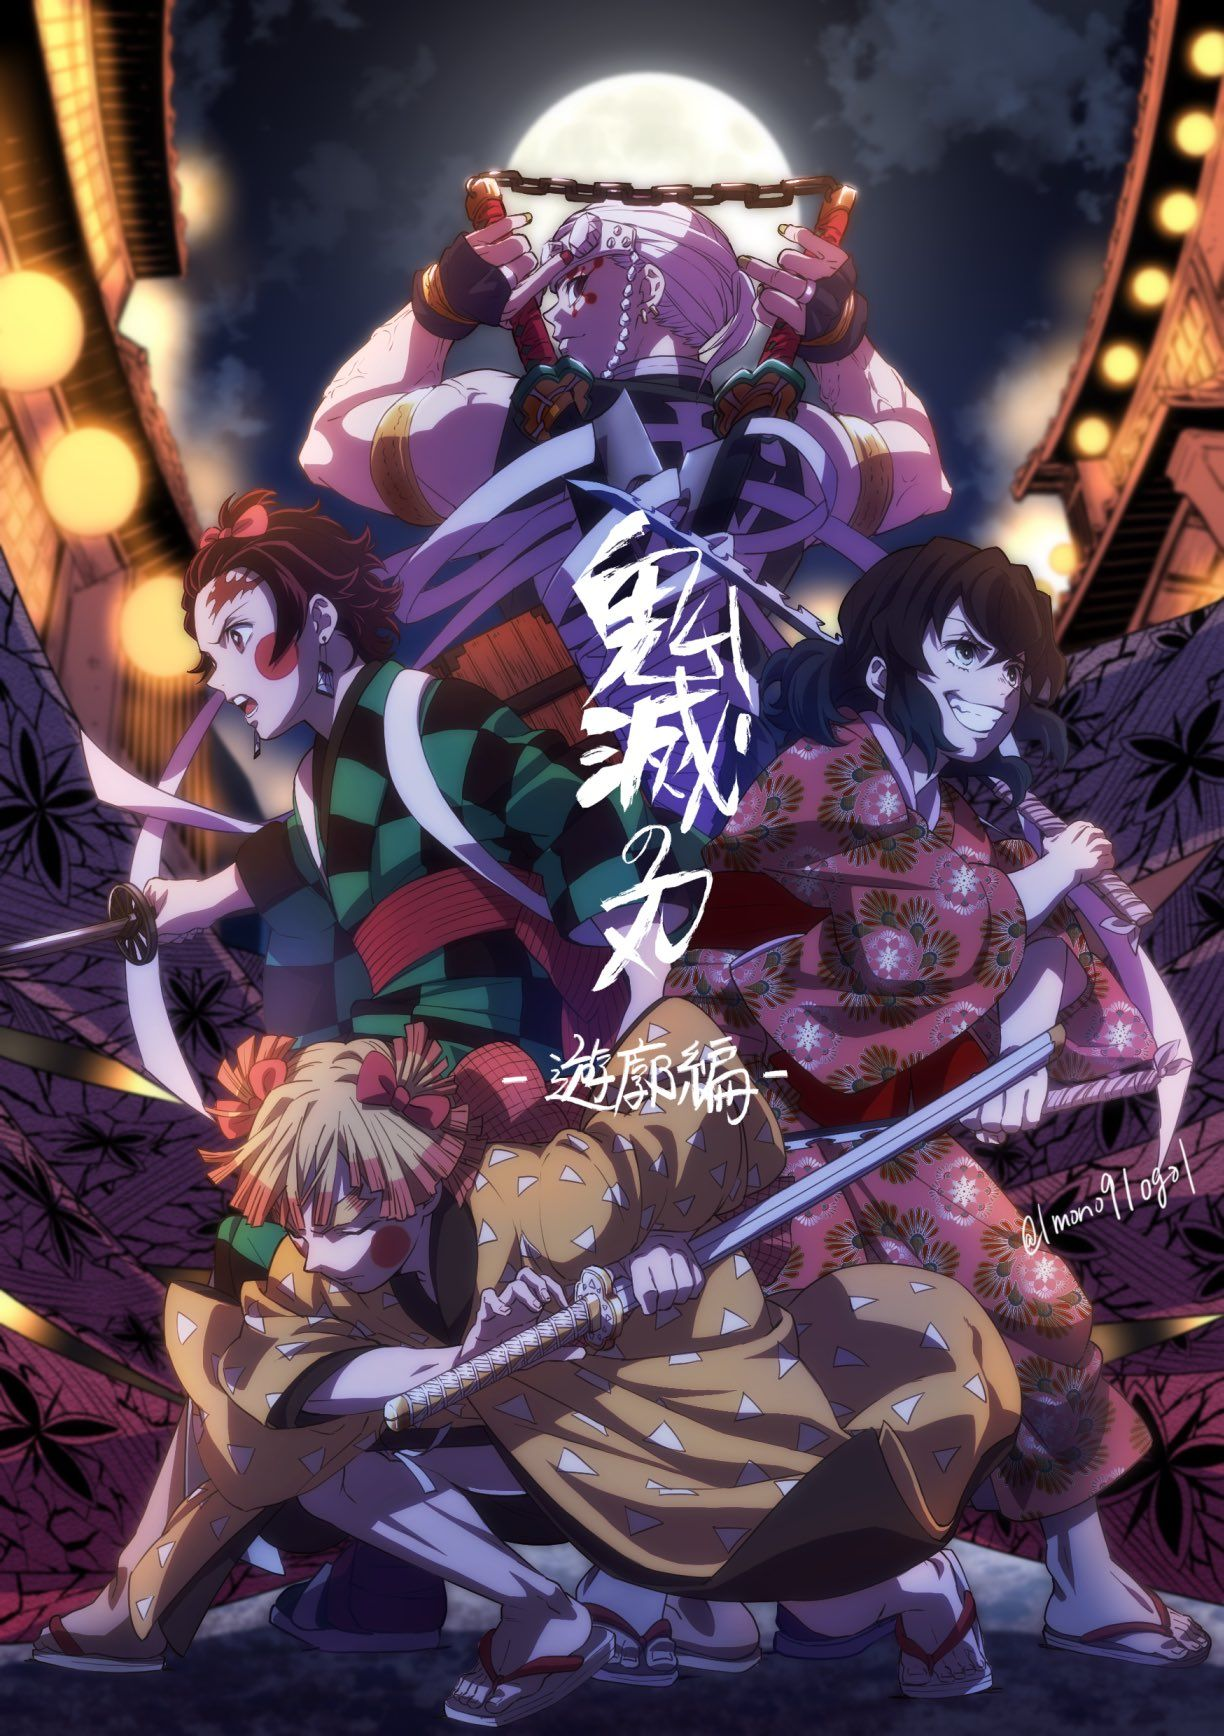 Pin by 半糖半冰 on 鬼滅の刃 in 2020 Anime demon, Slayer anime, Demon